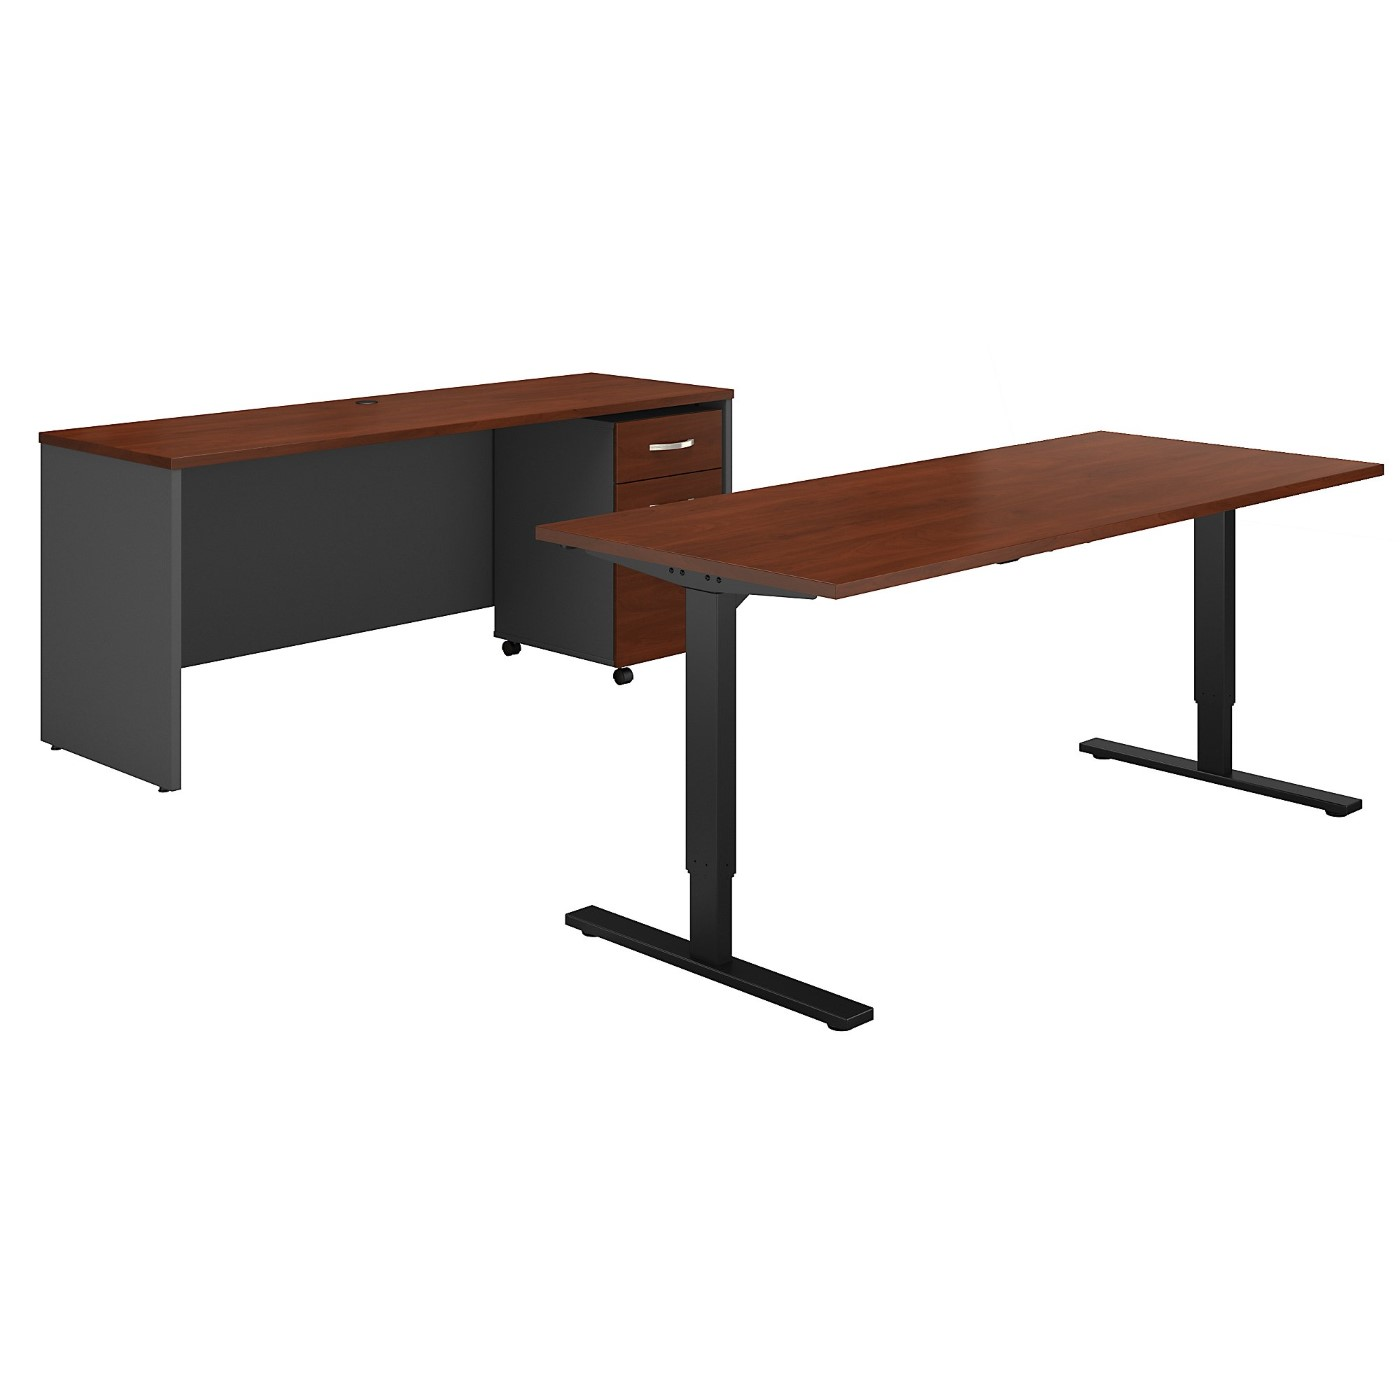 BUSH BUSINESS FURNITURE SERIES C 72W HEIGHT ADJUSTABLE STANDING DESK, CREDENZA AND STORAGE. FREE SHIPPING